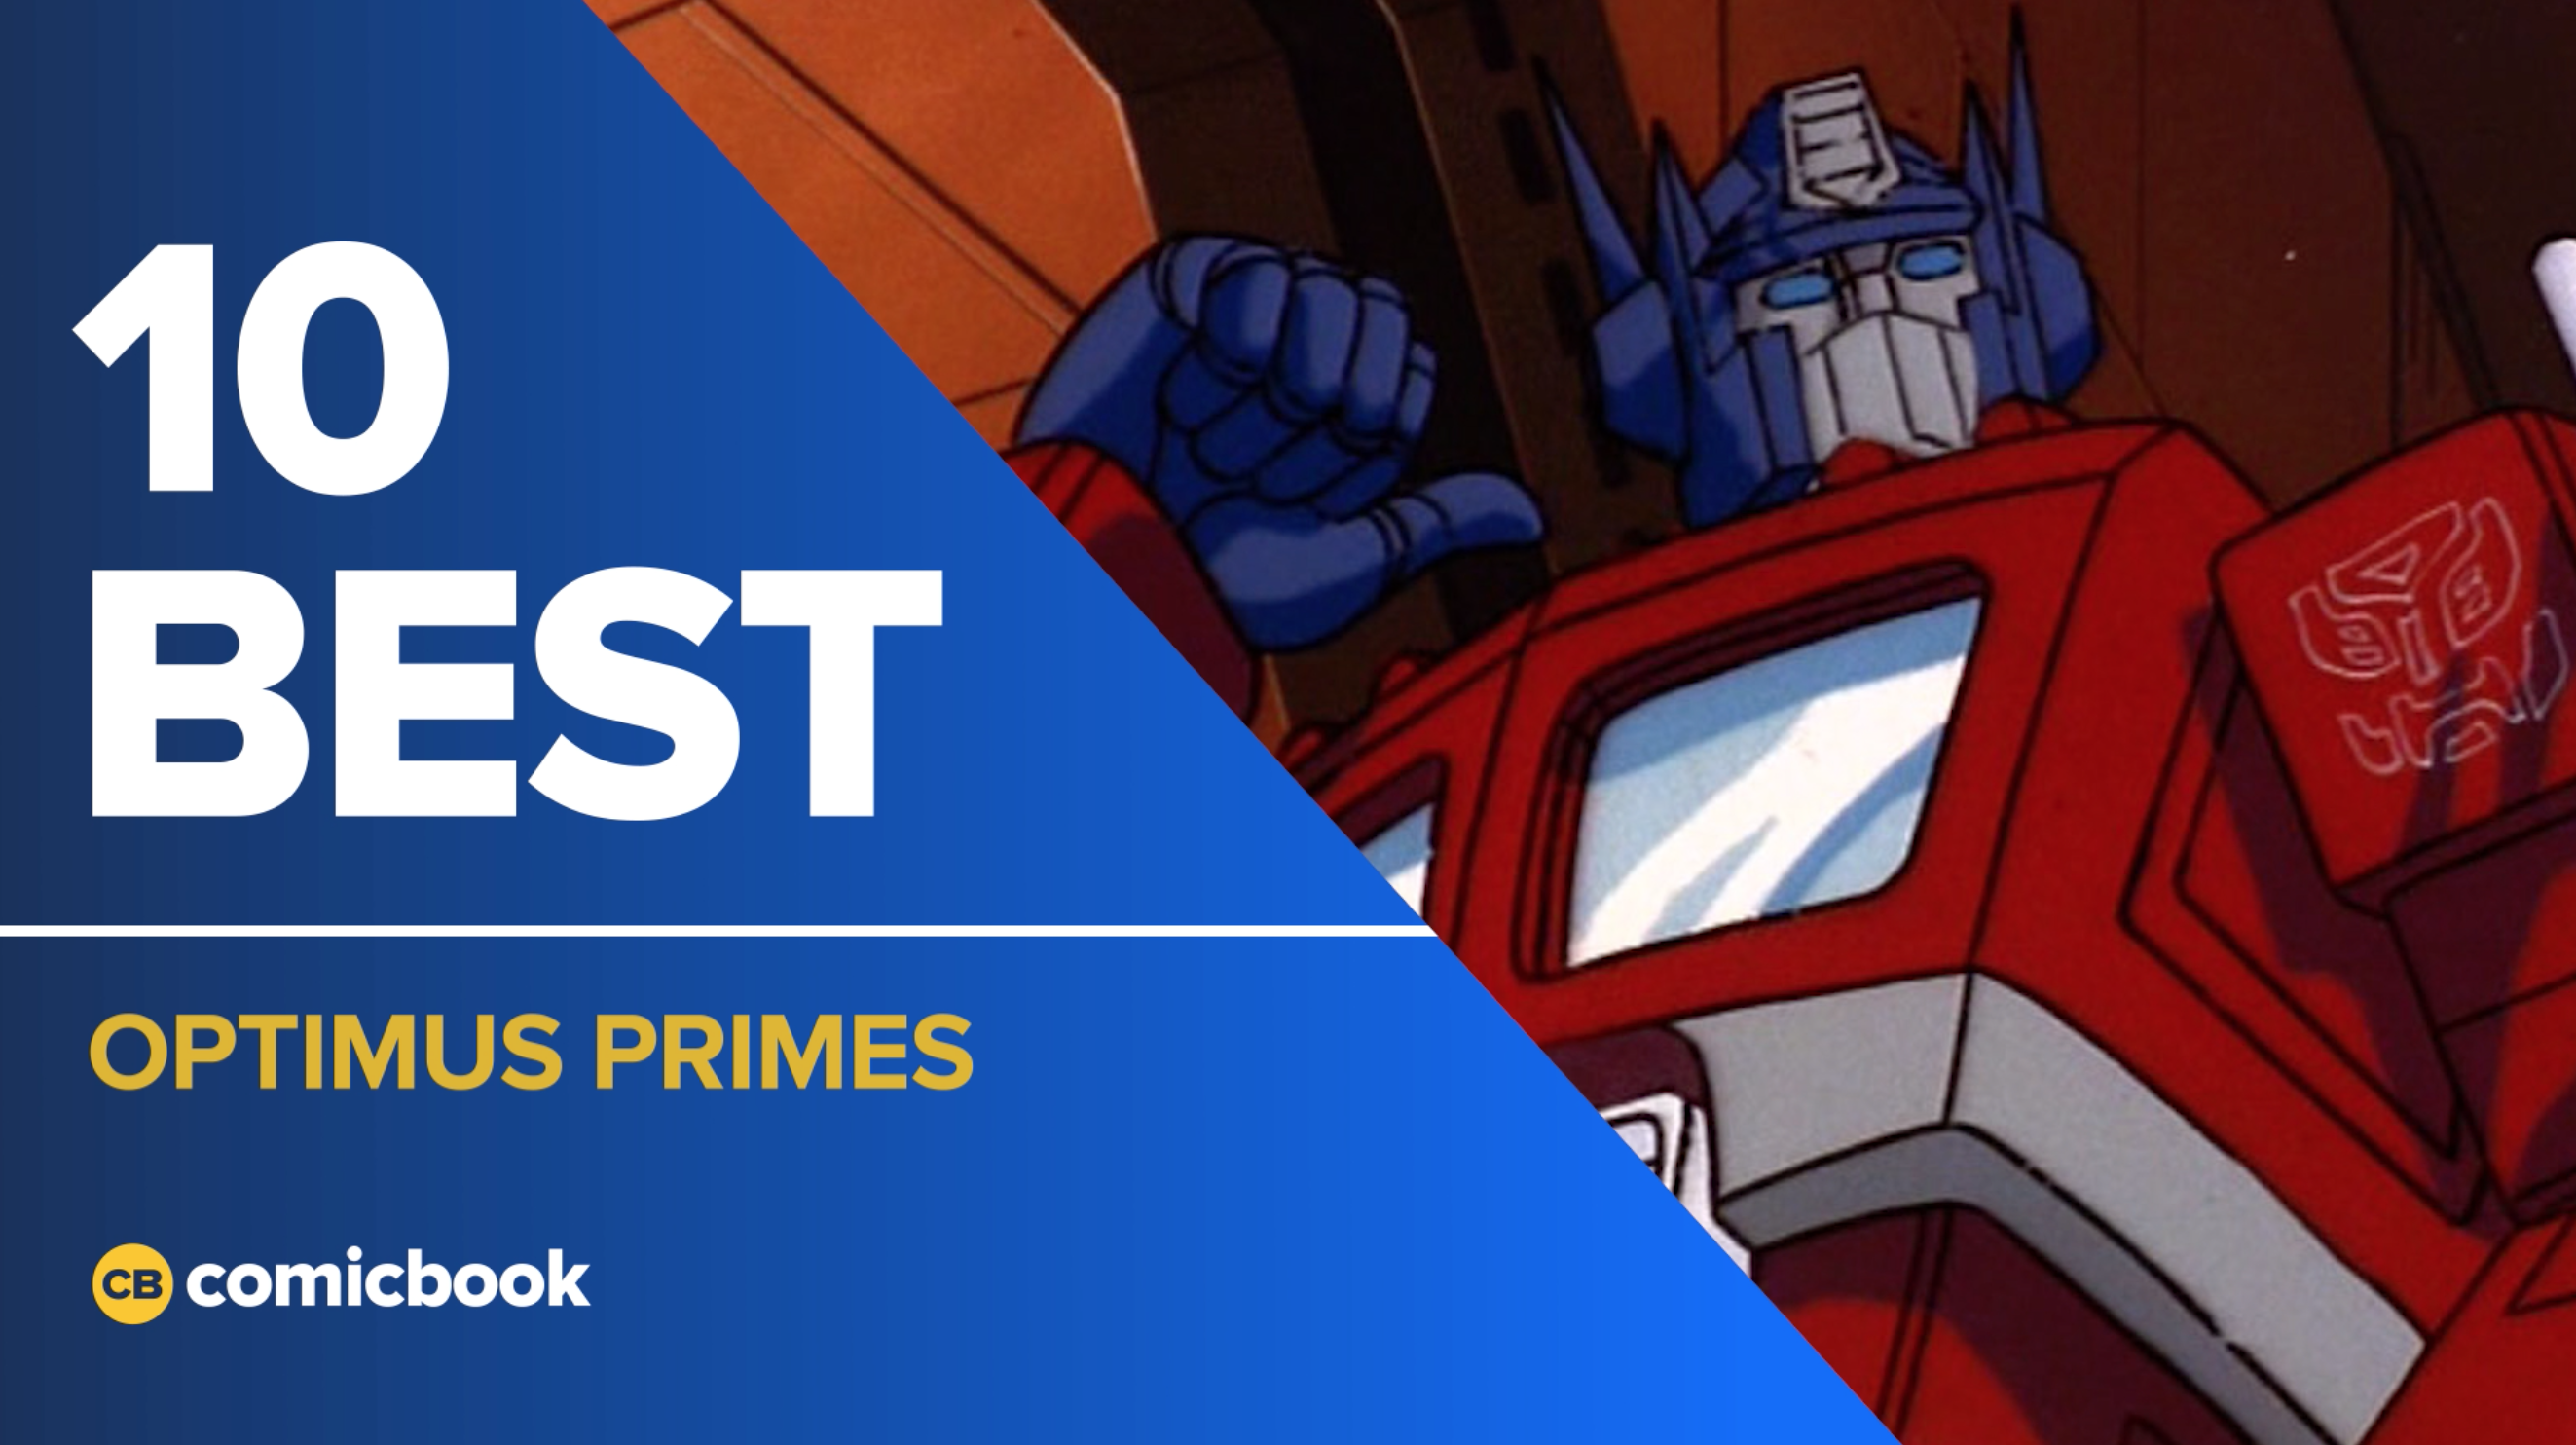 10 Best Optimus Primes screen capture